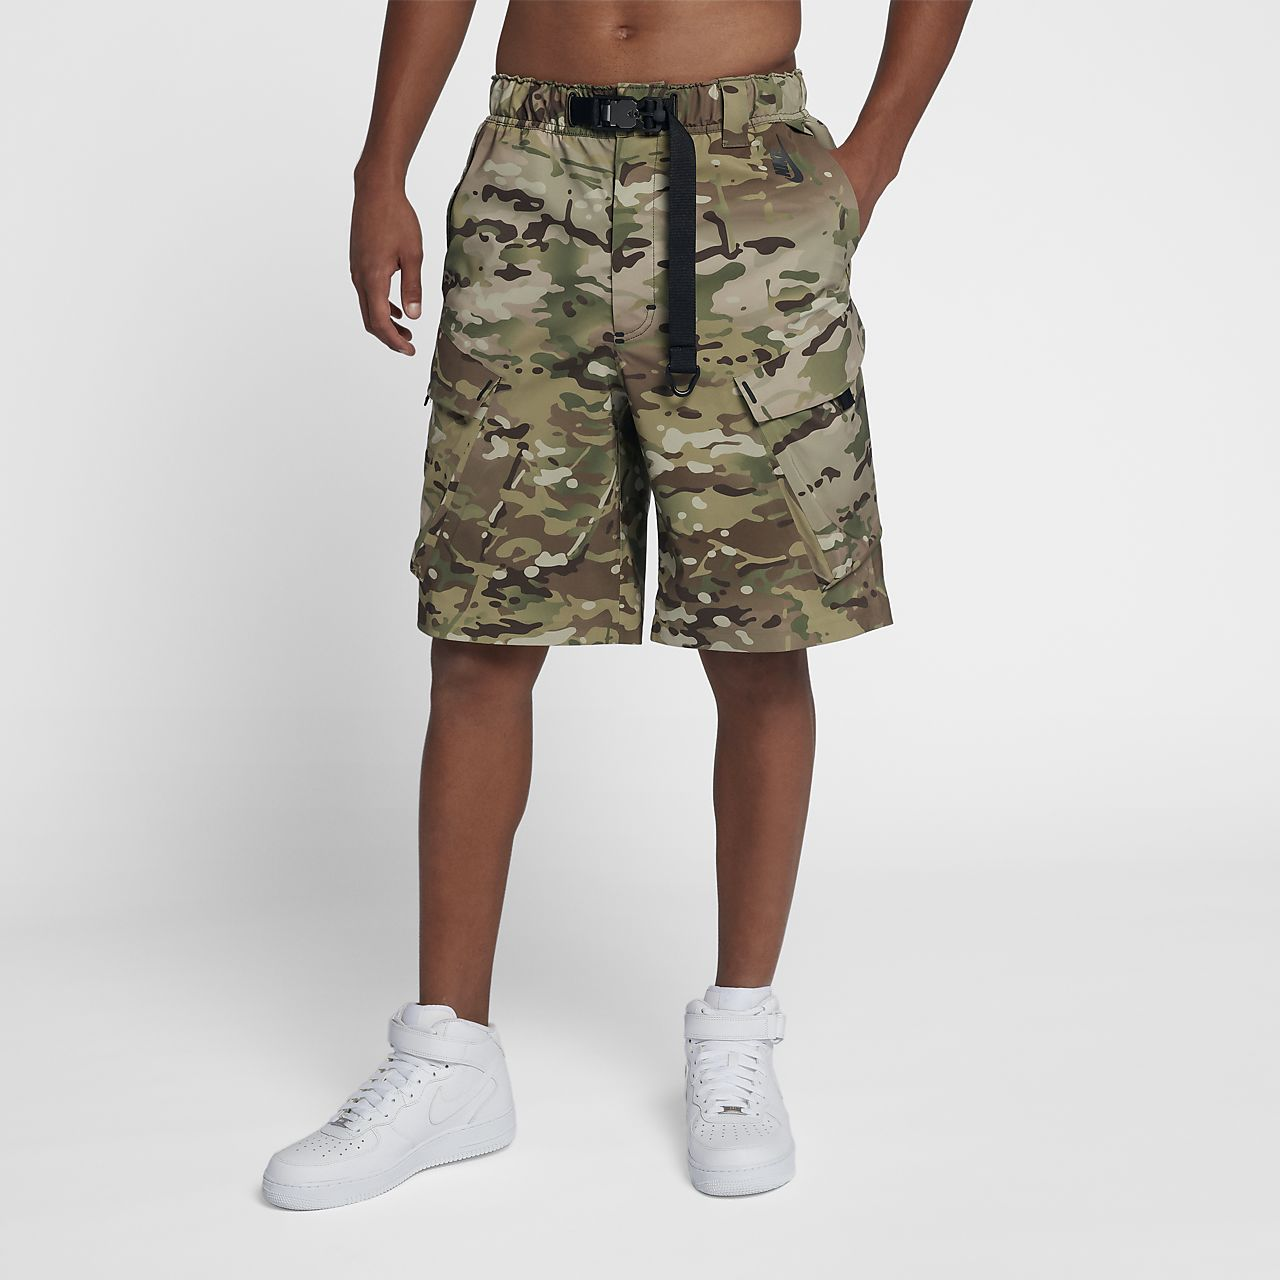 NikeLab Collection Men's Shorts